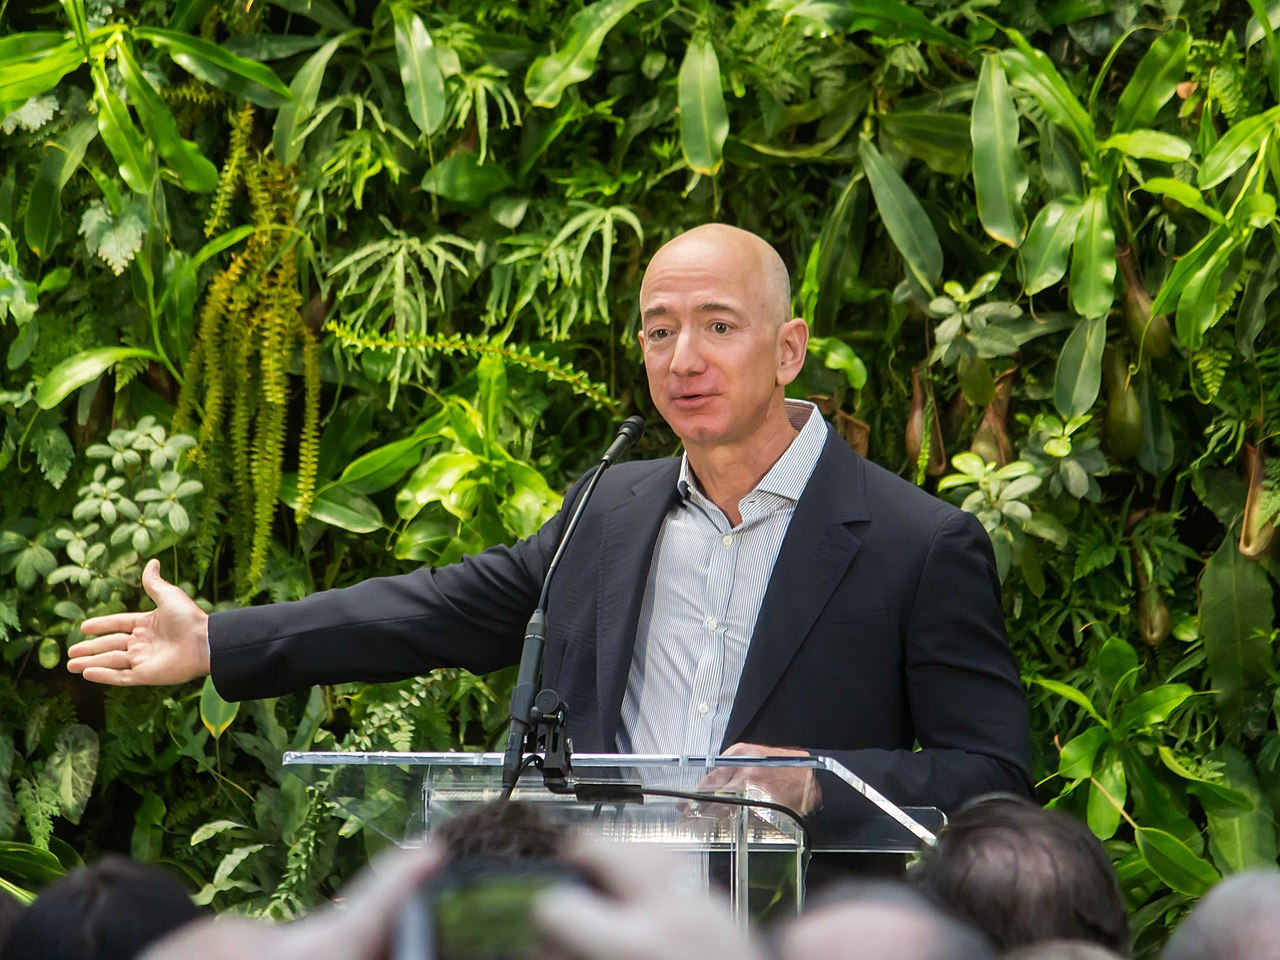 Reasons to admire Jeff Bezos